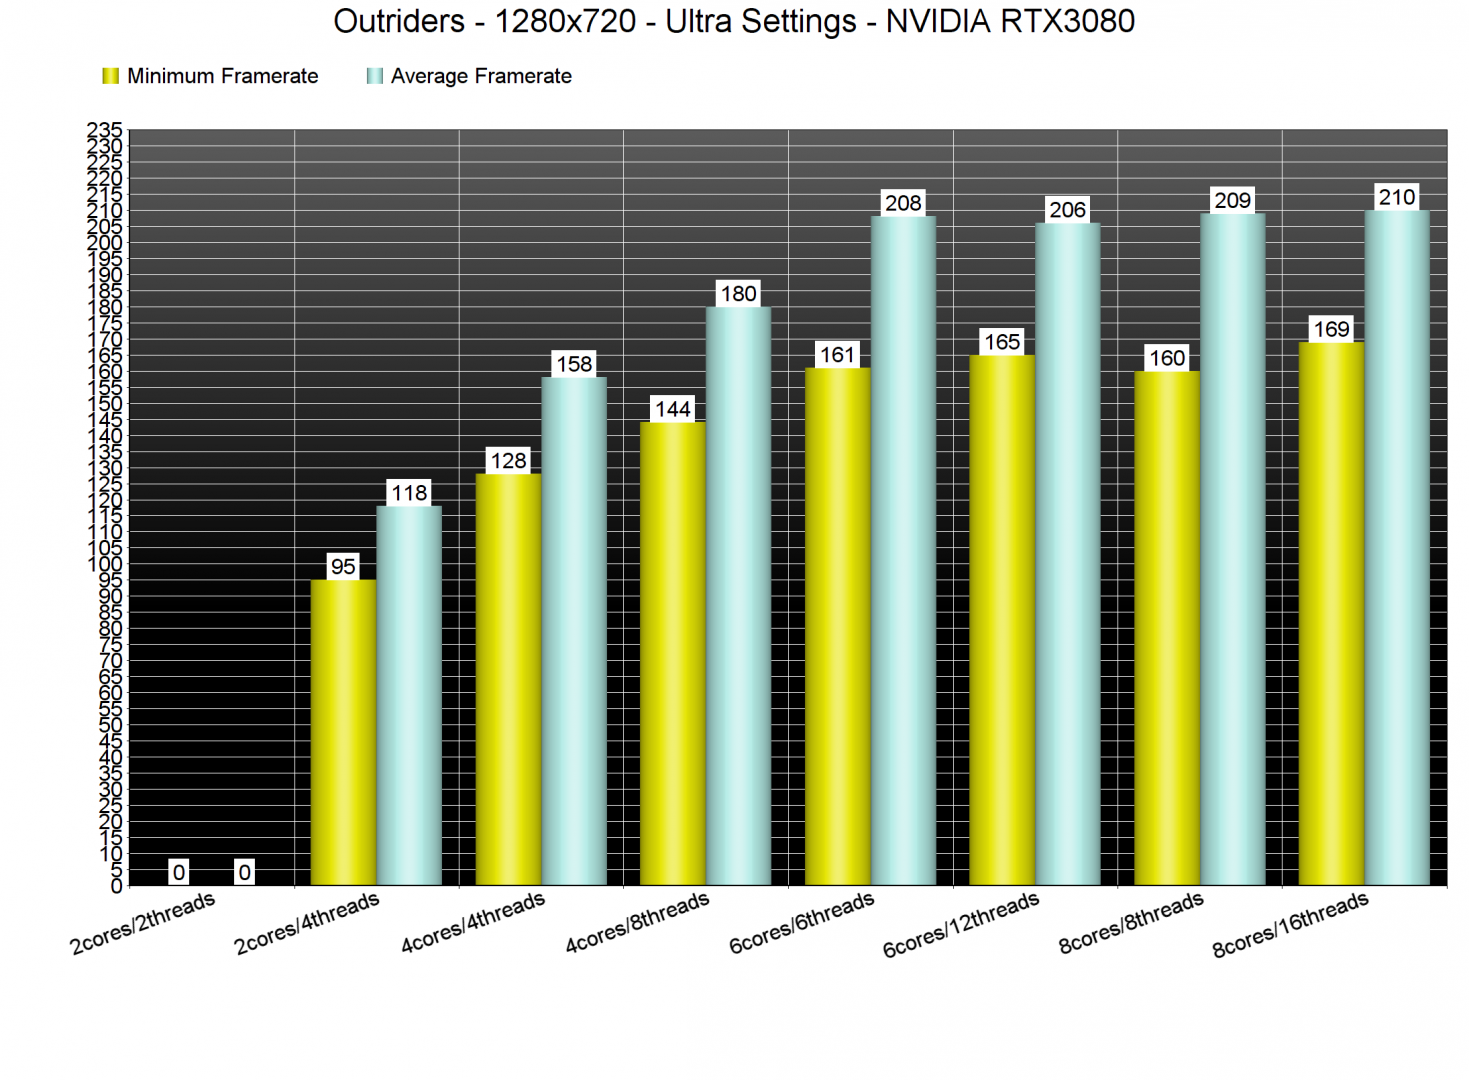 Outriders CPU benchmarks